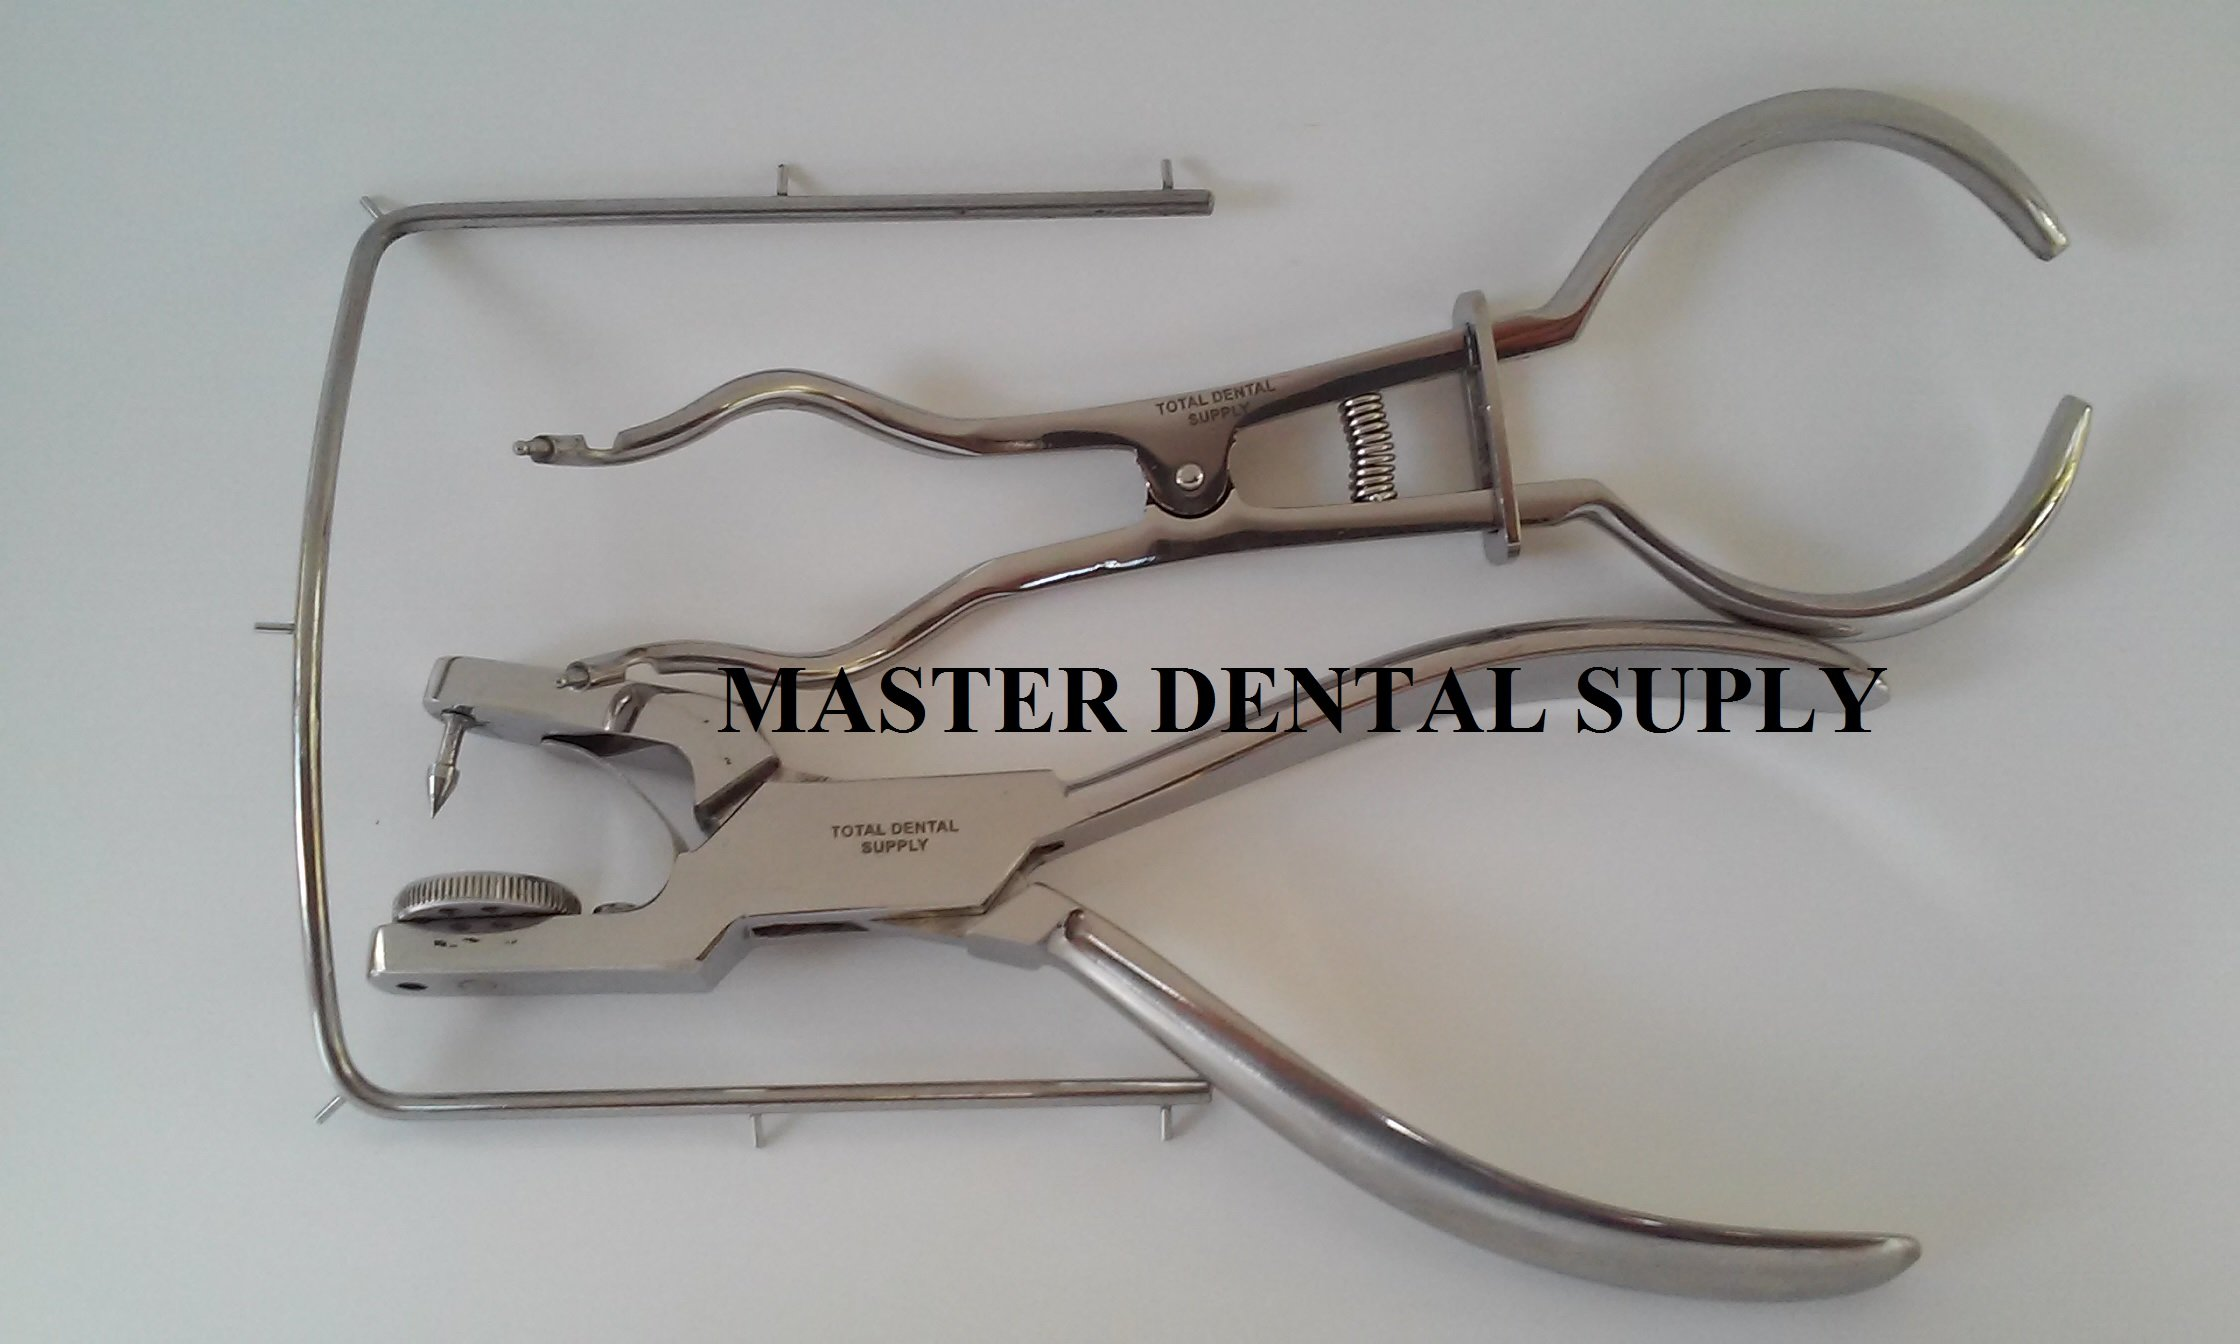 Dental Endo Rubber Dam Clamp COMPLETE KIT Inludes: 1 PUNCH AINSWORTH, 1 BREWER FORCEPS and 1 FRAME Stainless Steel Ships from USA